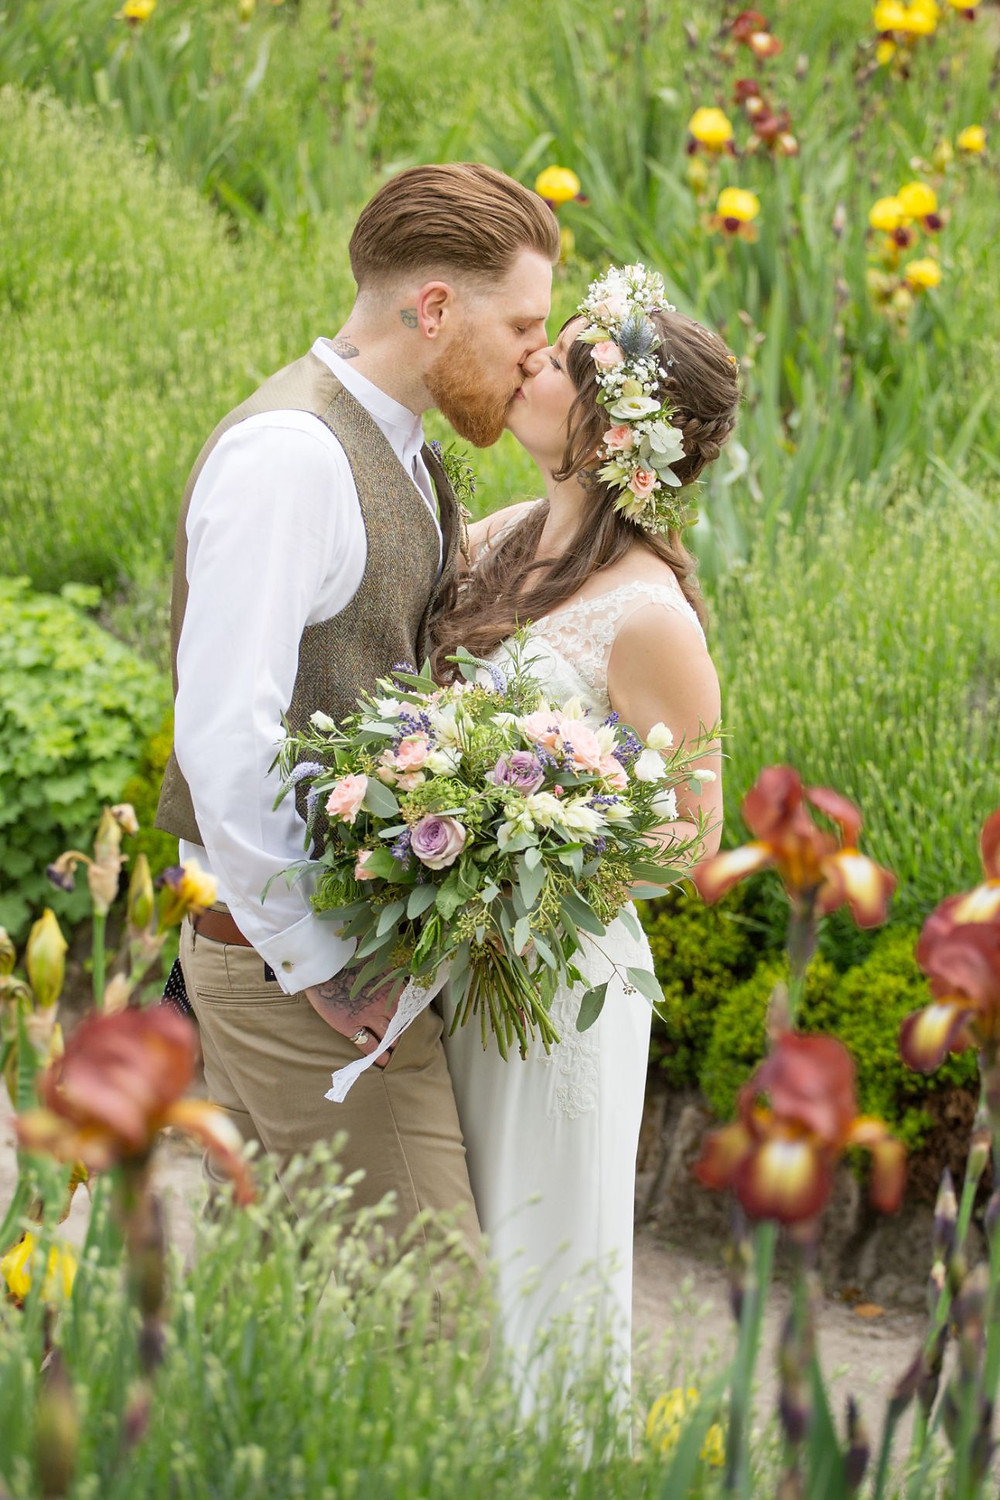 Helen England Photography | Bride and groom kissing | Flower Crown | garden wedding